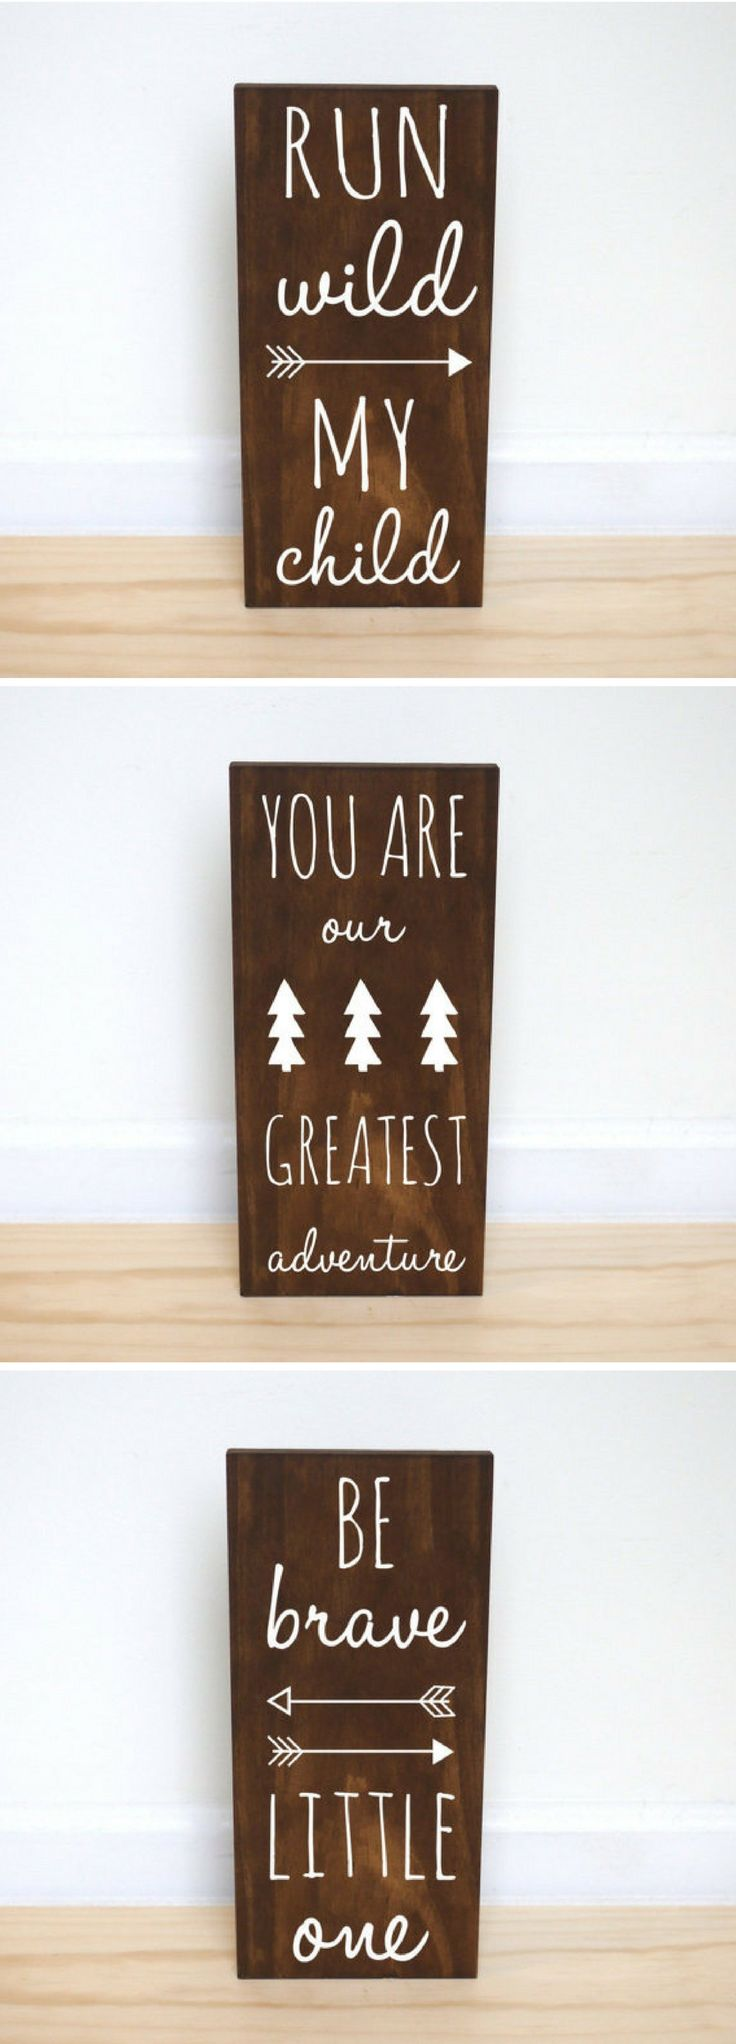 Be brave little one, run wild my child, you are my greatest adventure, nursery decor, kids bedroom decor, woodland nursery, baby shower gift by Handy Gerl